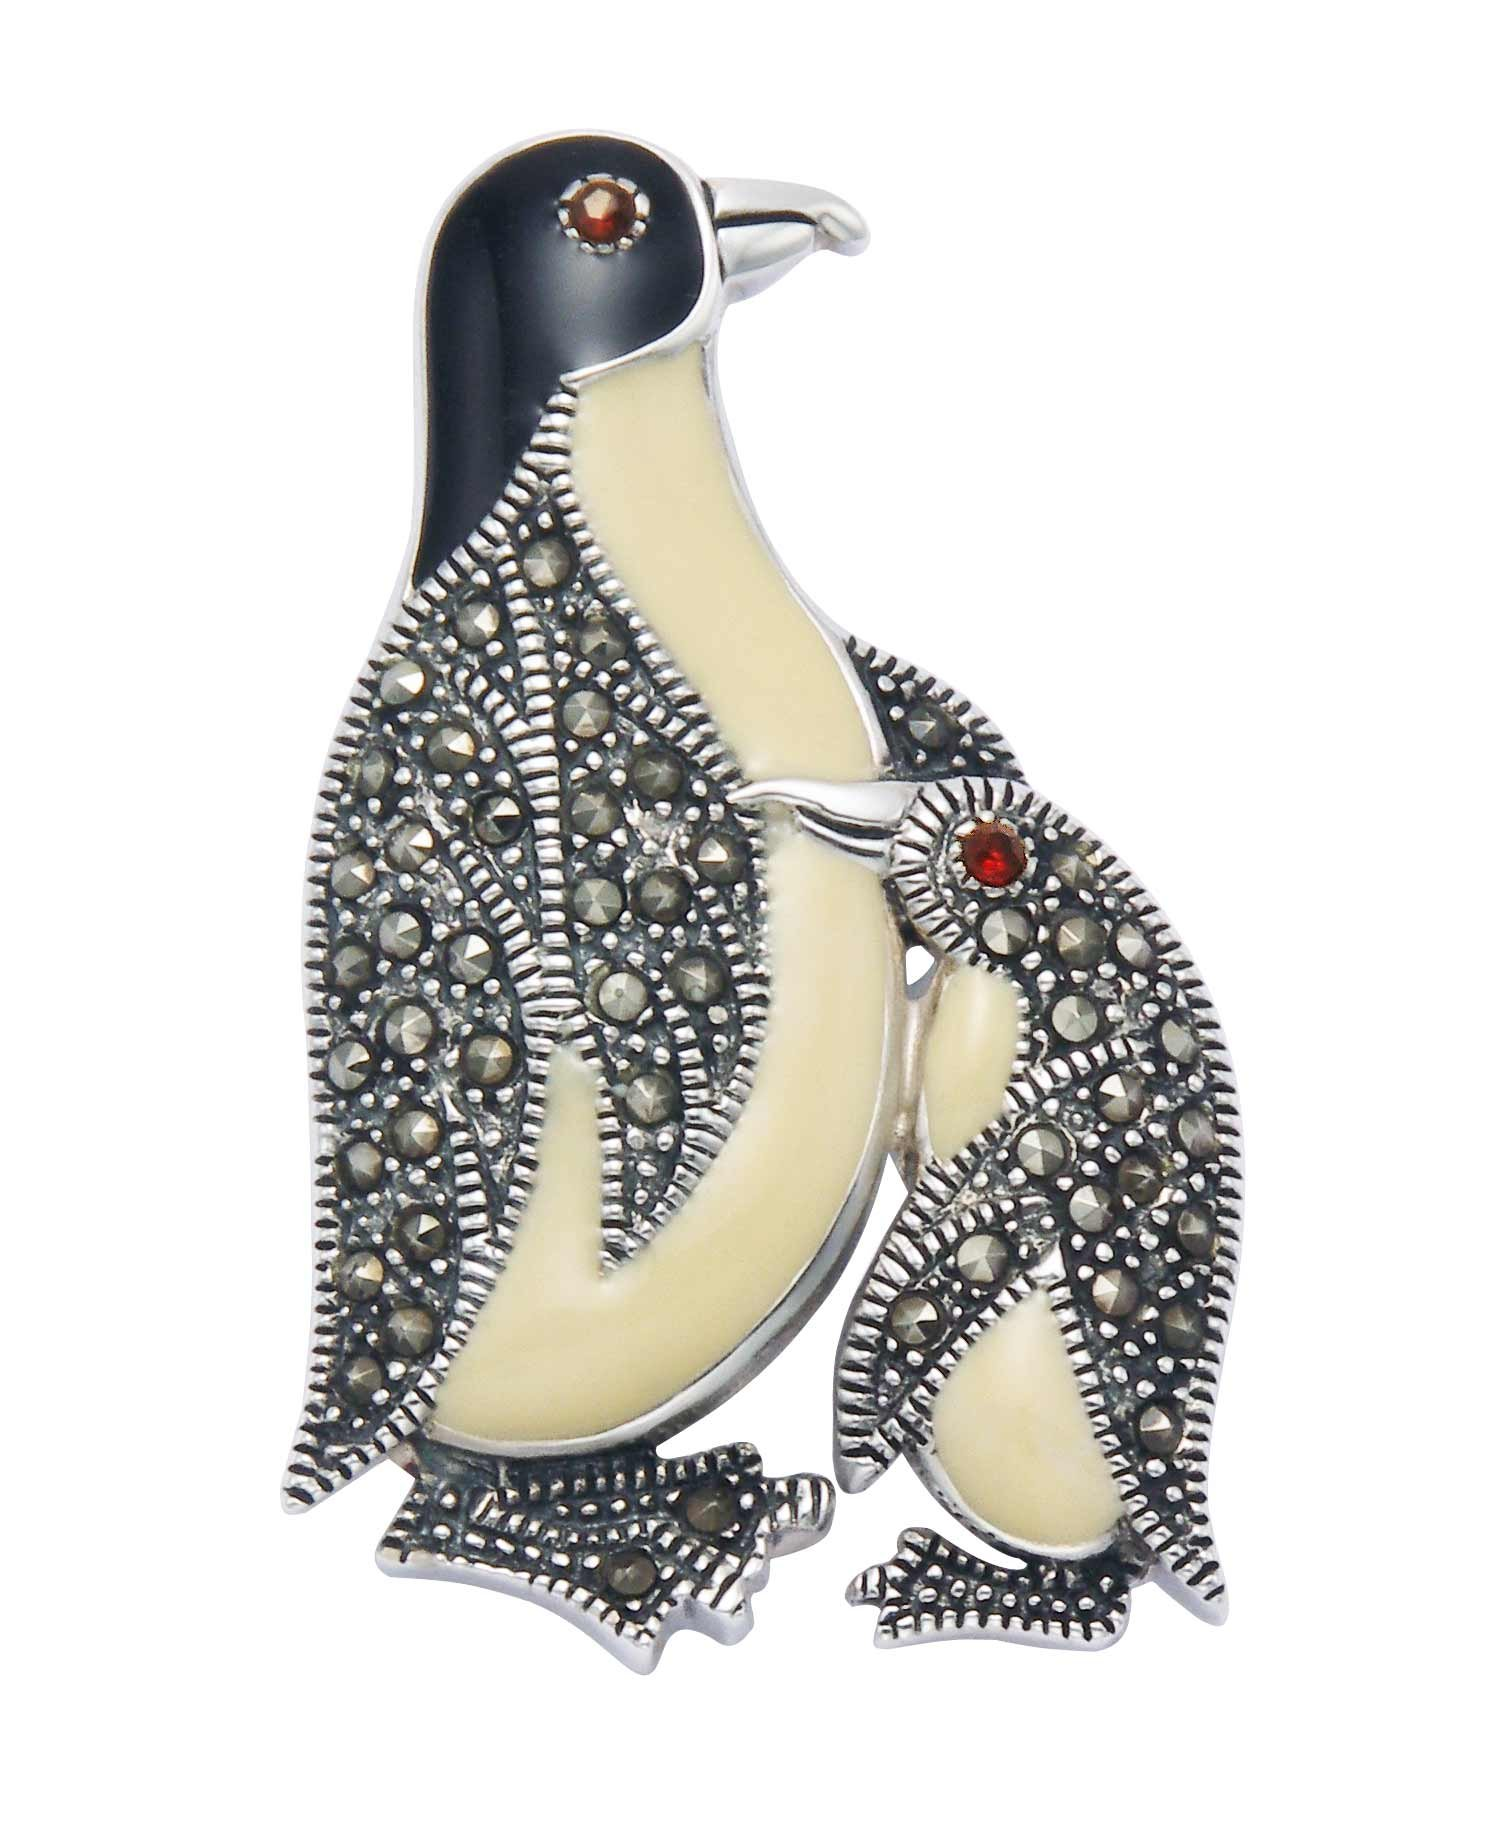 Sterling Silver Penguin & Chick Penguin Pin w/Marcasite Stones, Red Crystal Eye & Enamel Accents